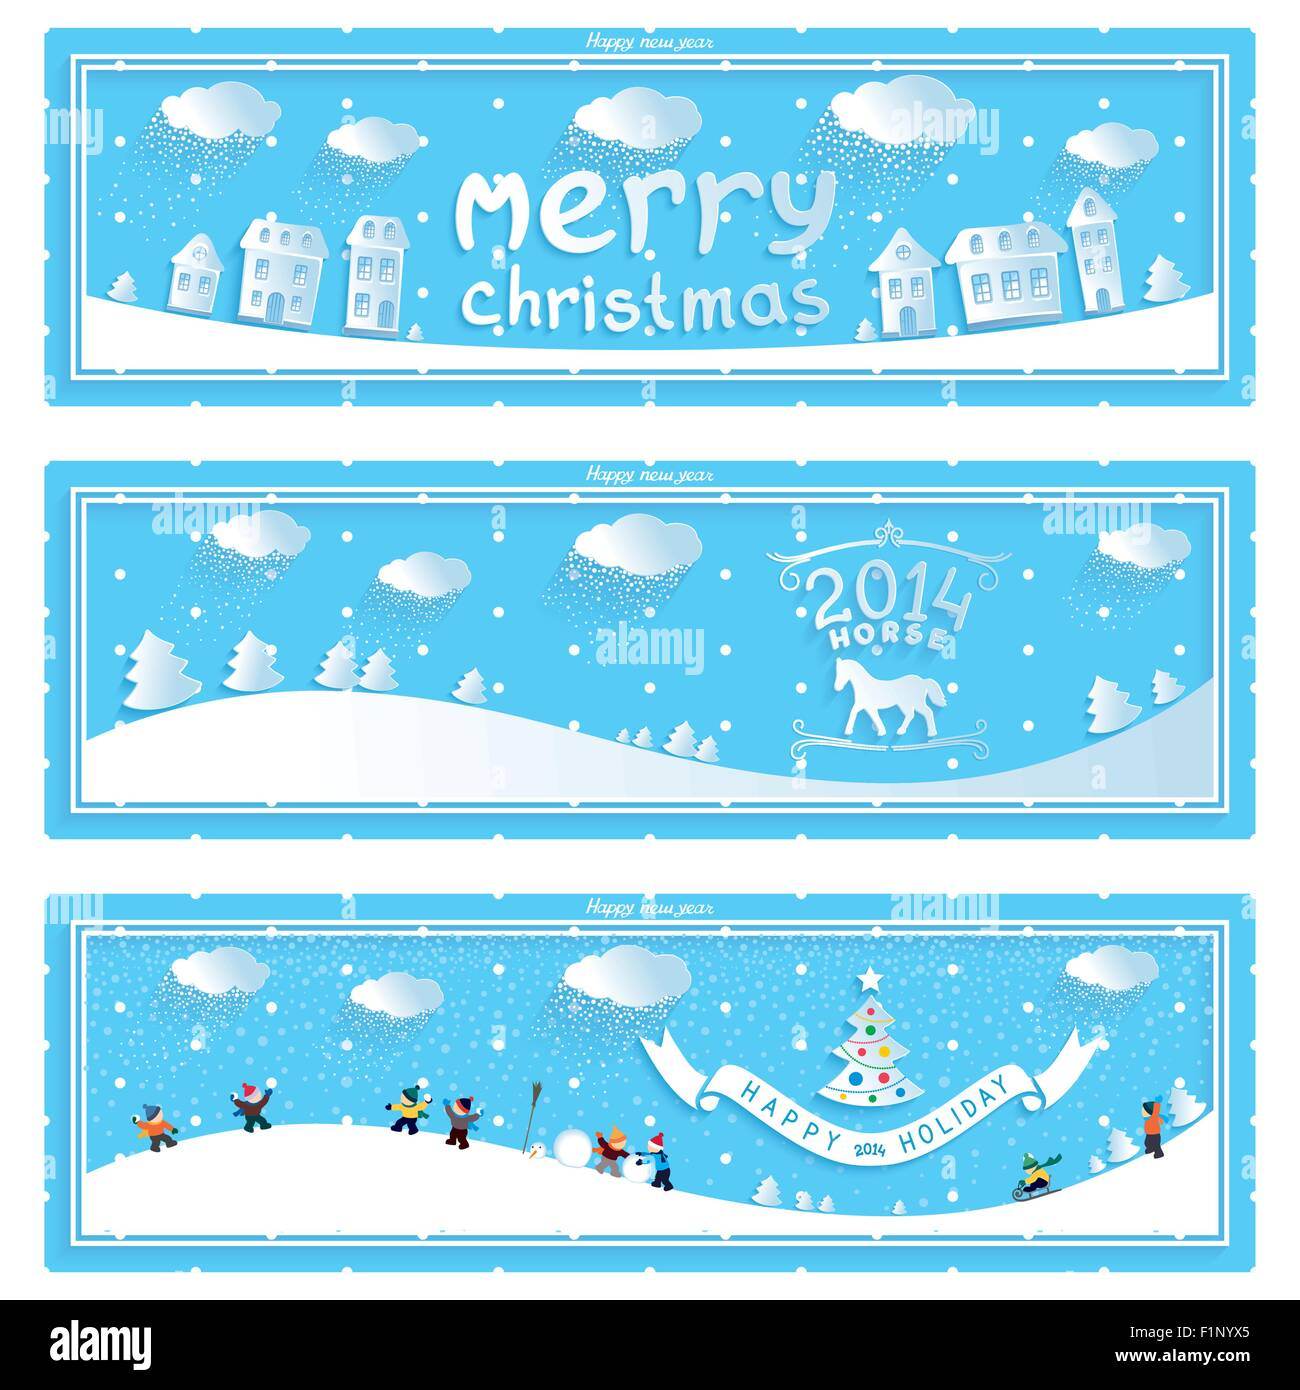 Winter Holiday Banners Confetti Banners